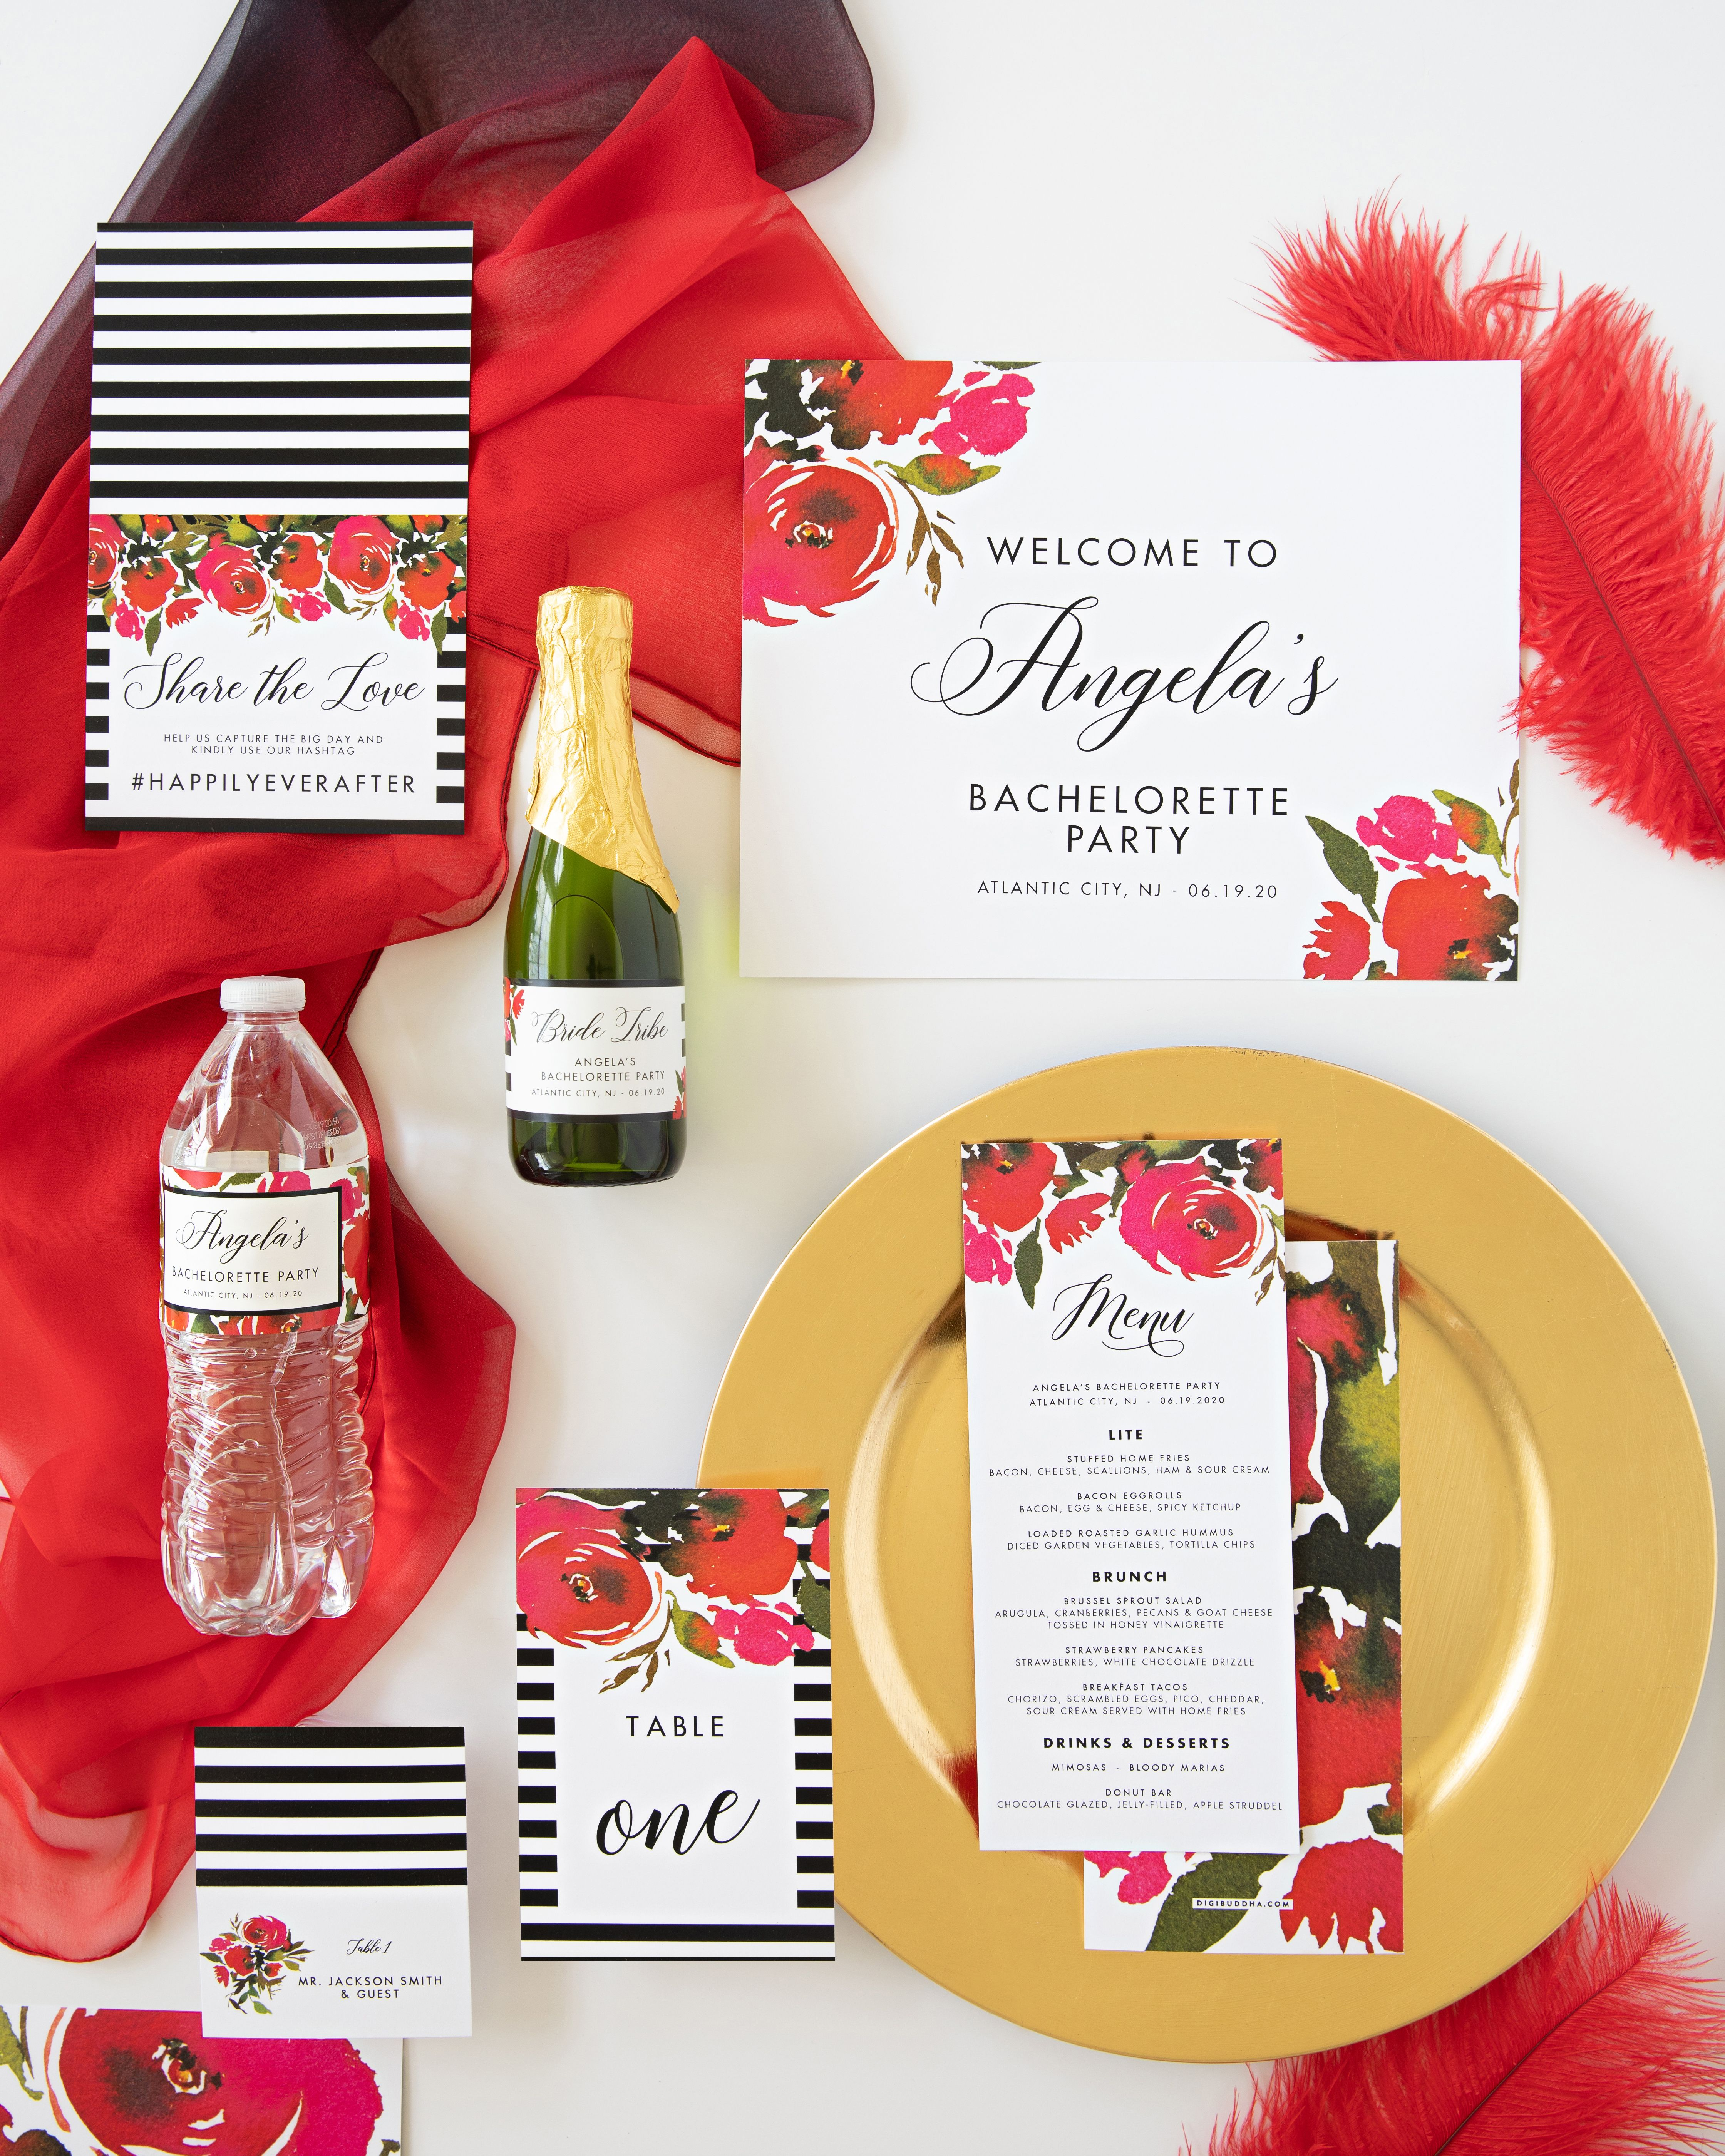 Red Roses Black Stripes Bachelorette Invitation Coll 1b In 2020 Bachelorette Invitations Bachelorette Party Bachelorette Party Accessories